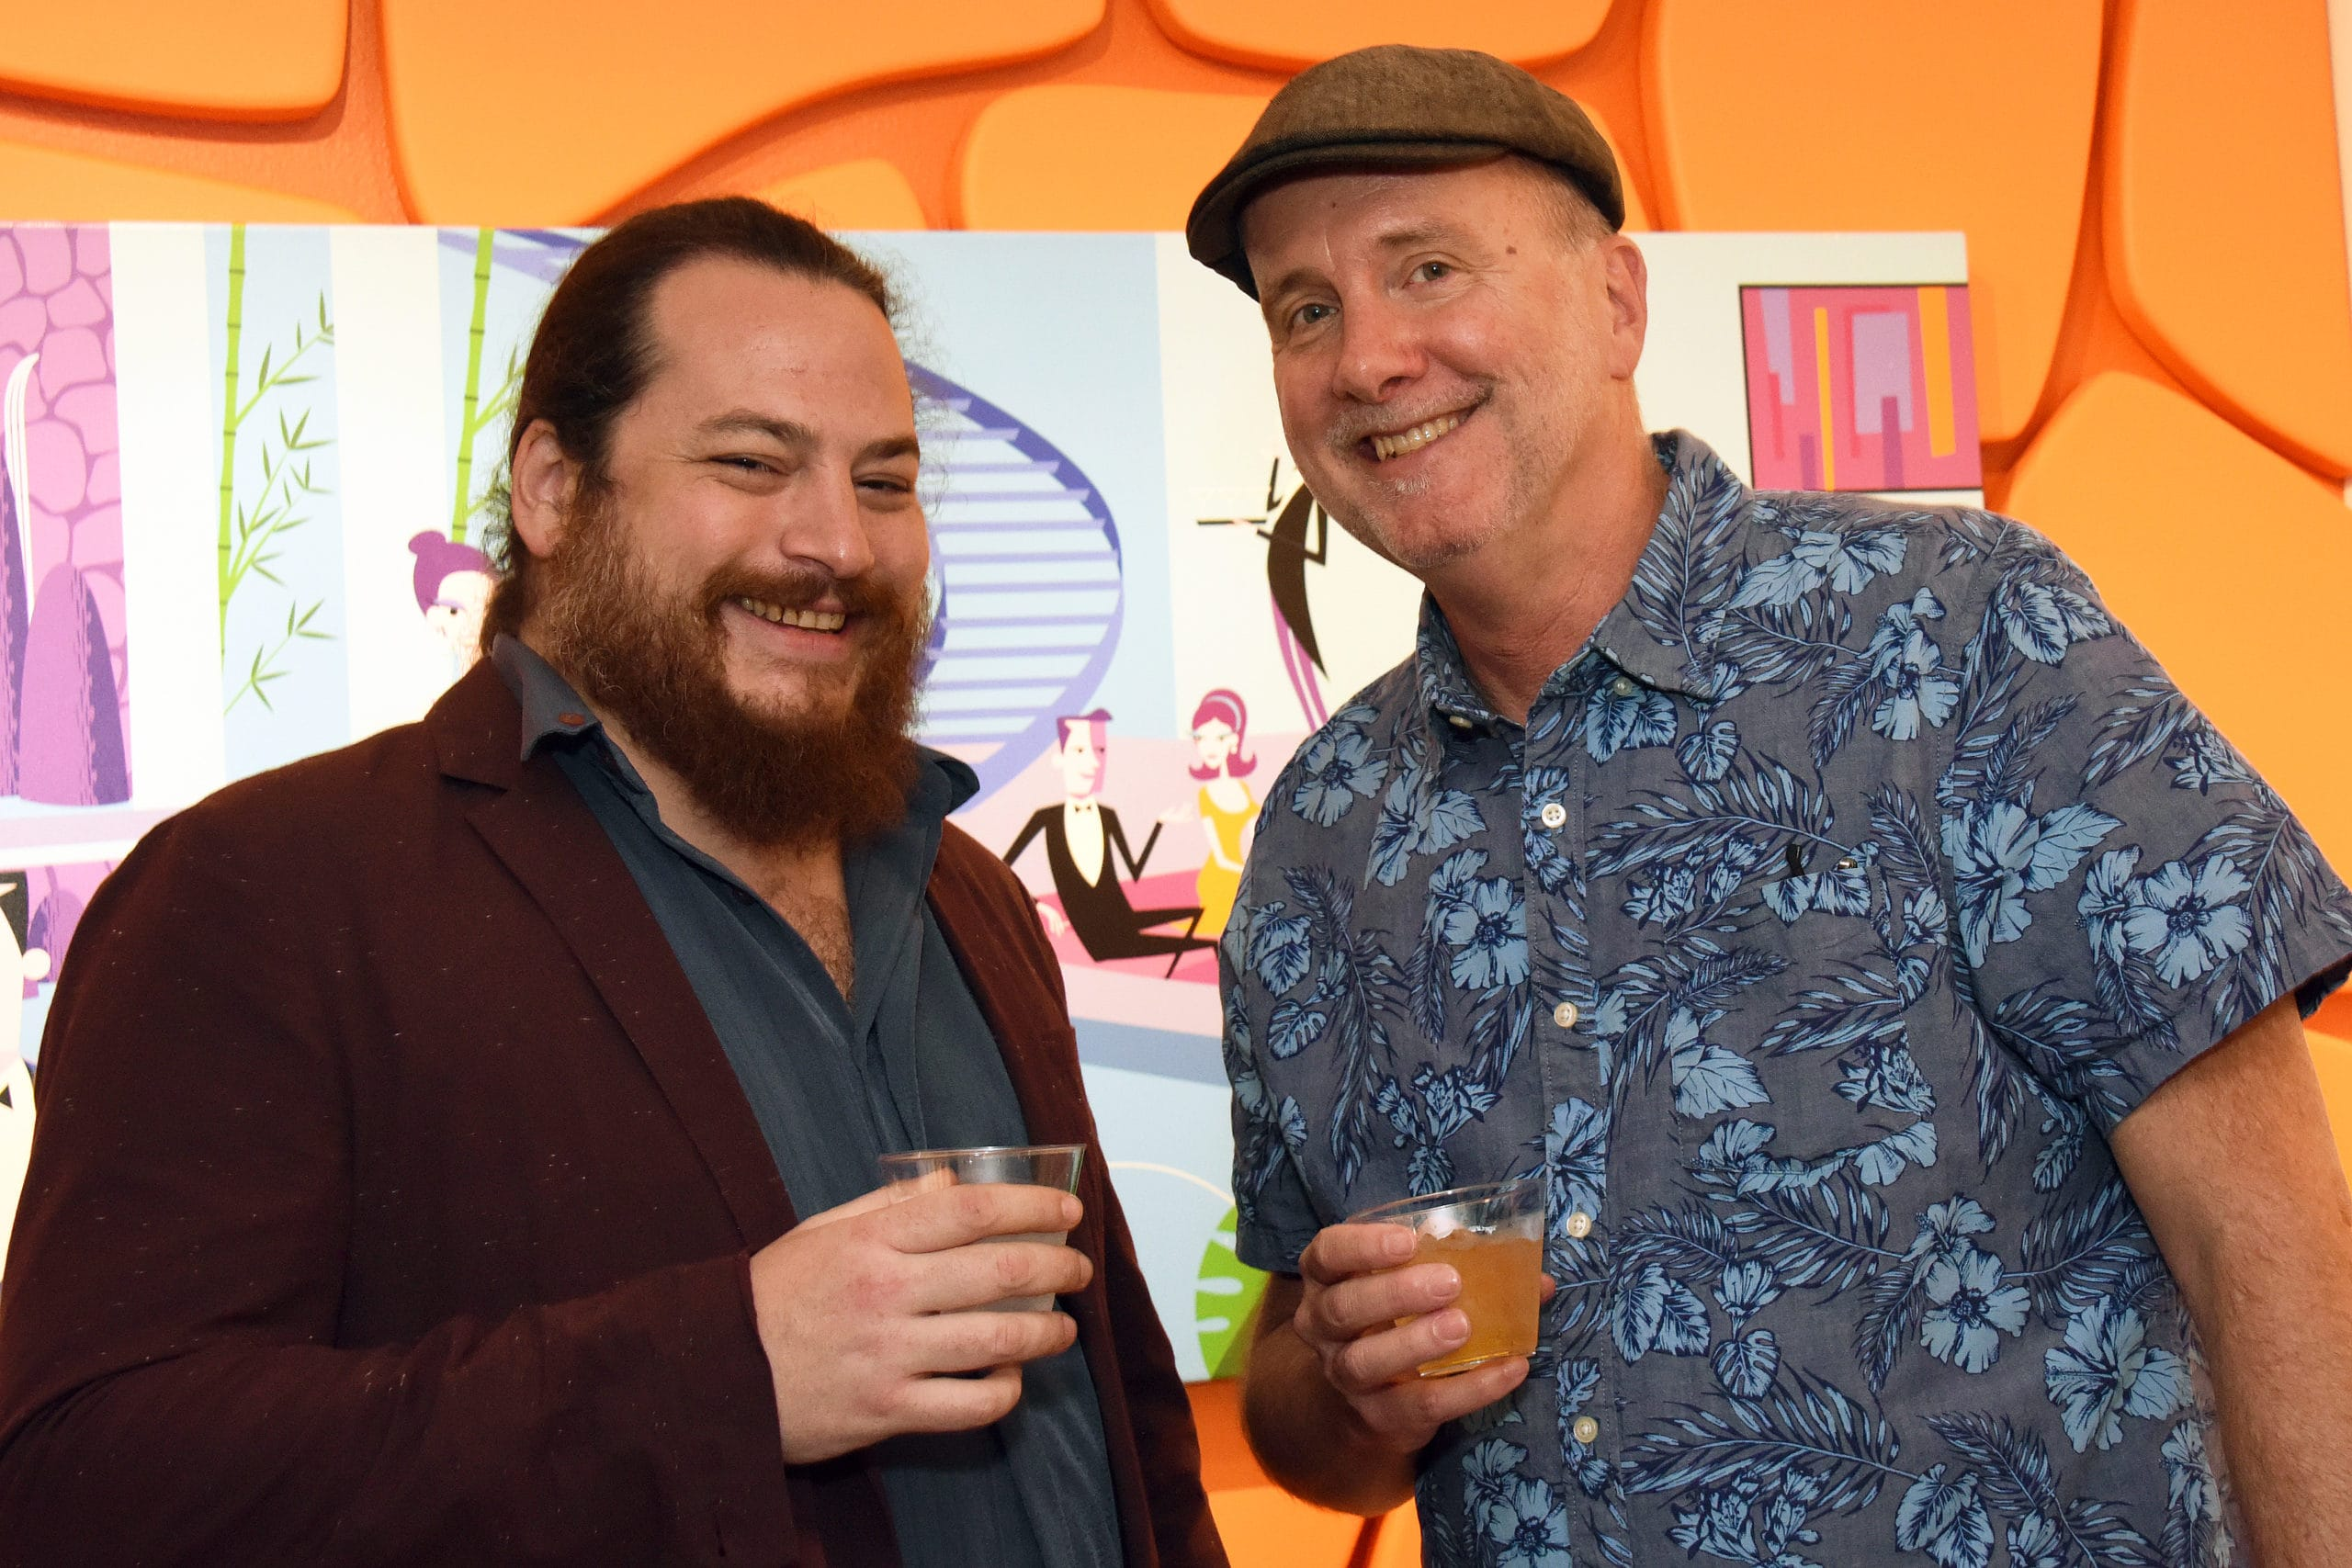 Jay Mewes, Kevin Smith Celebrate Shag Print Release in Palm Springs